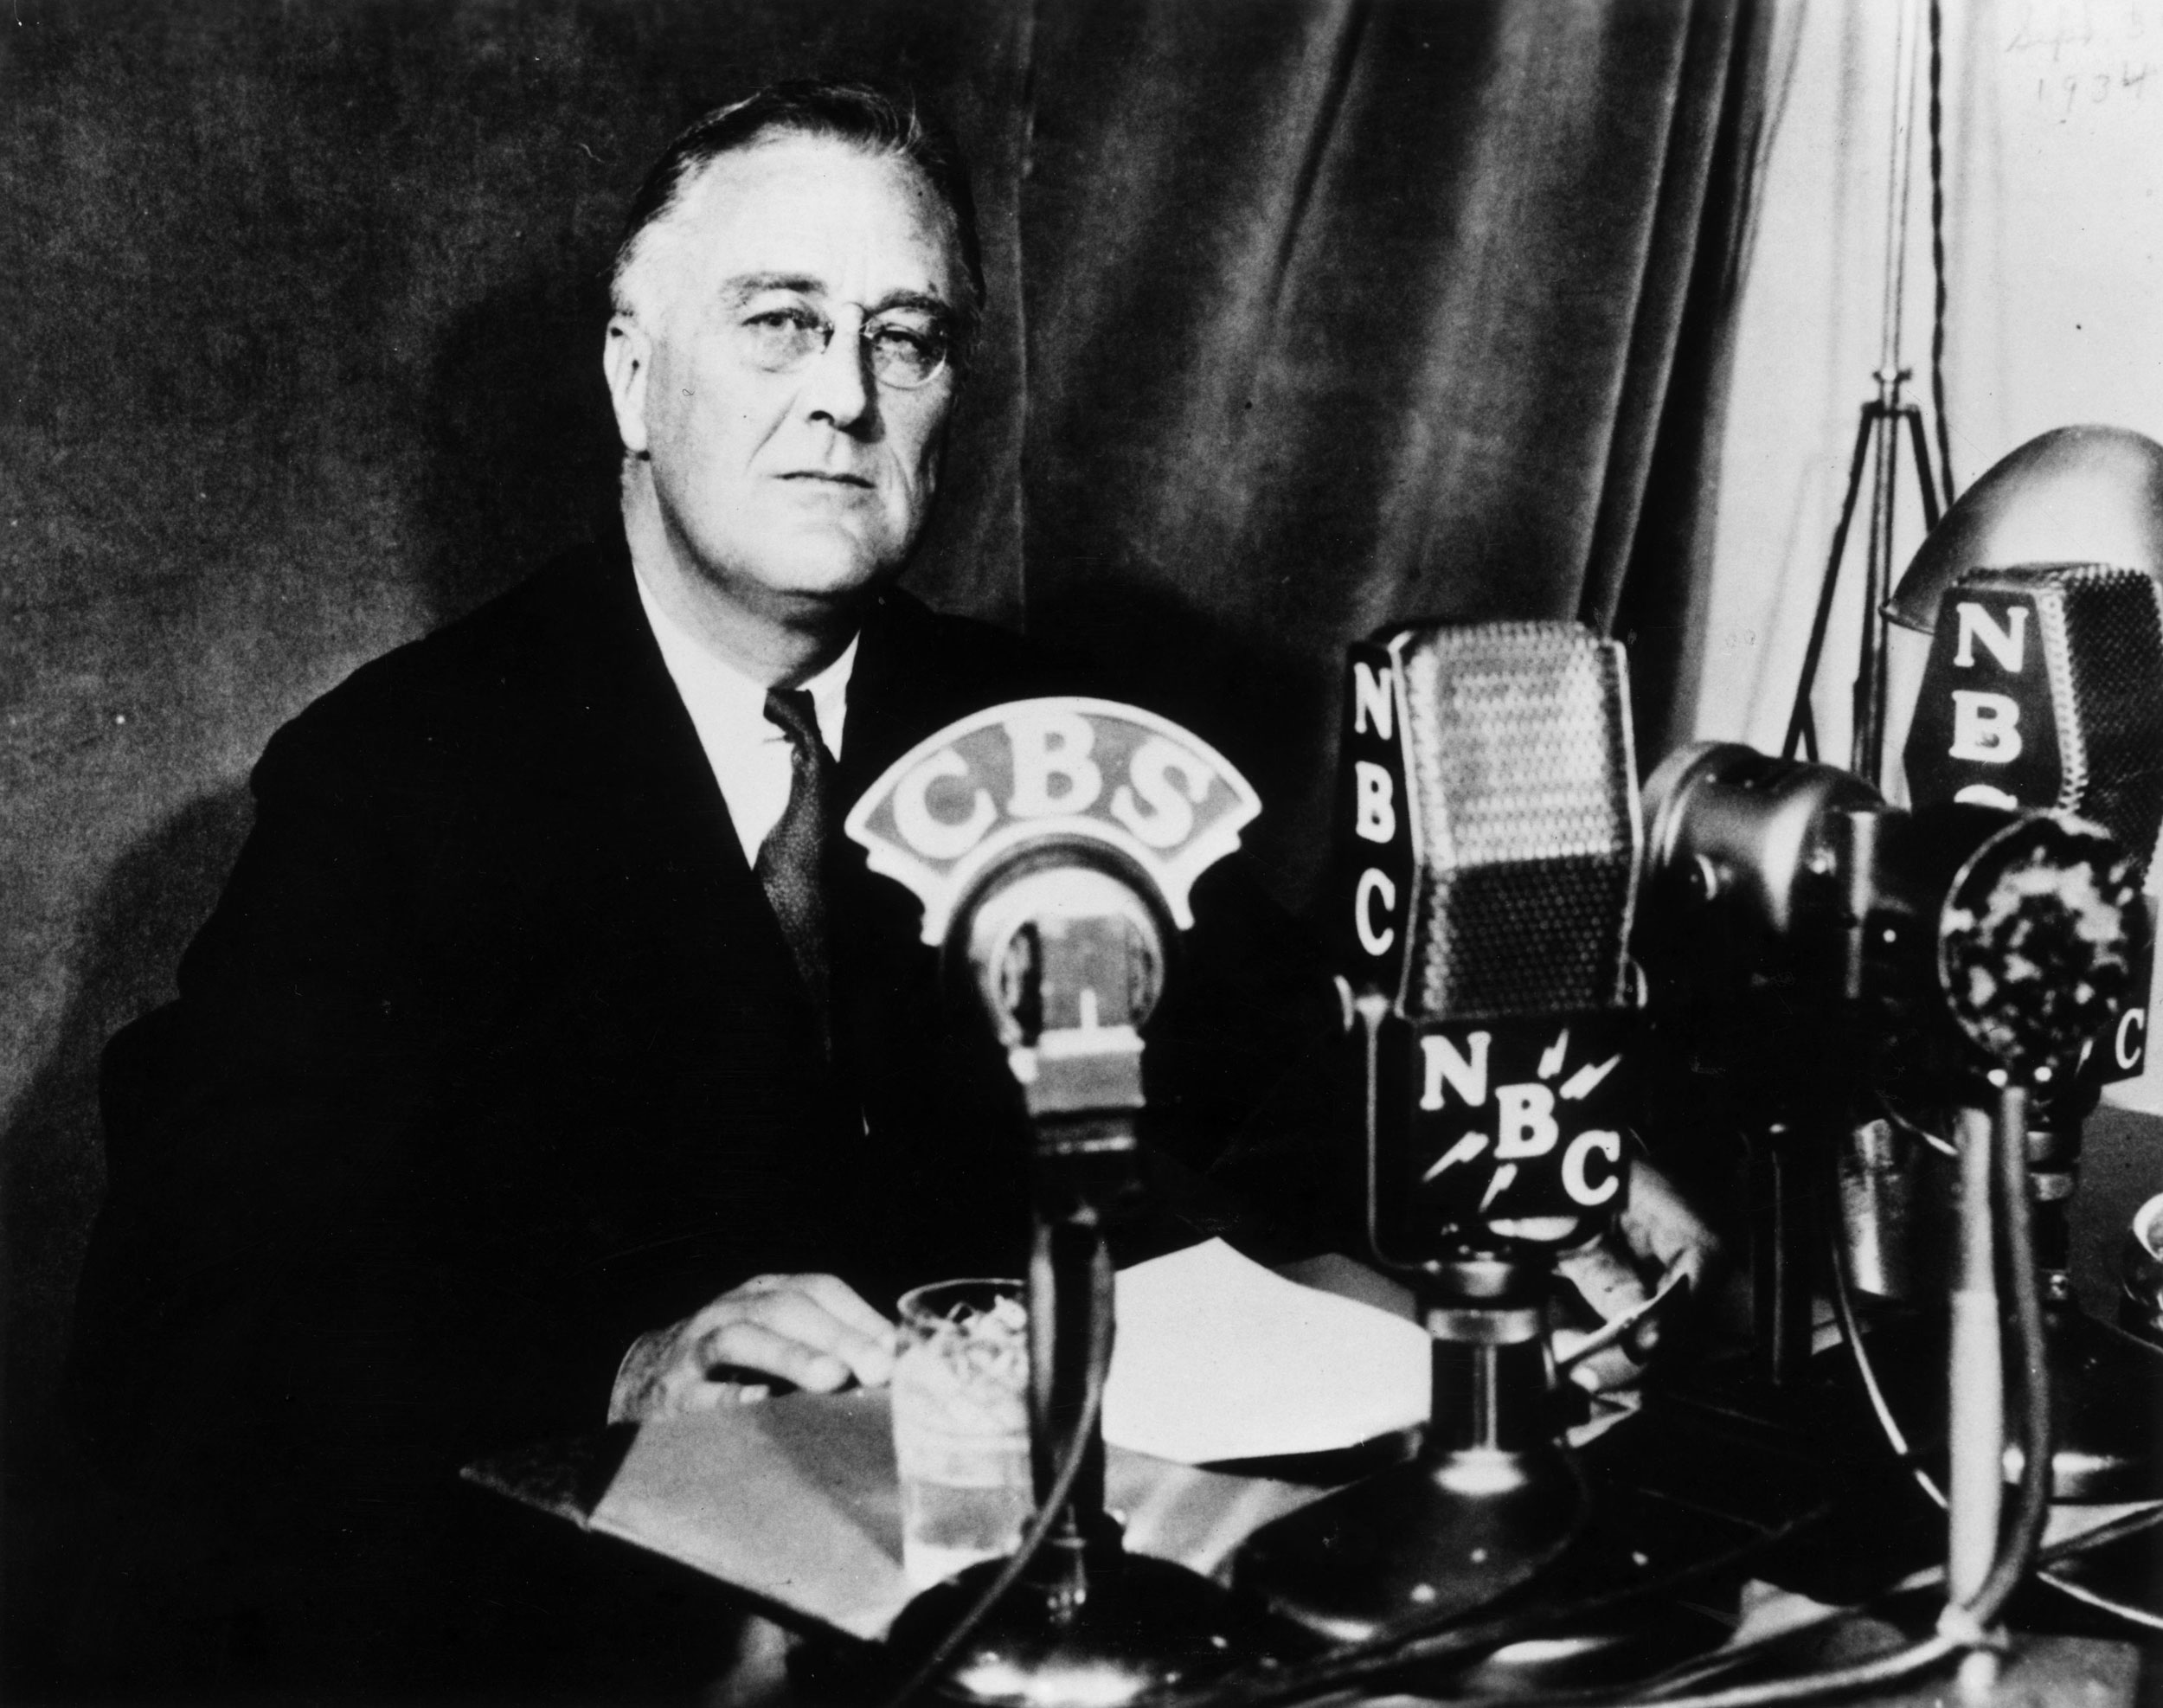 an introduction to franklin delano roosevelts new deal A new clip released by the fdr library on wednesday shows president franklin d roosevelt walking toward a crowd gathered to see him at the white house easter egg roll in 1935 the film was.